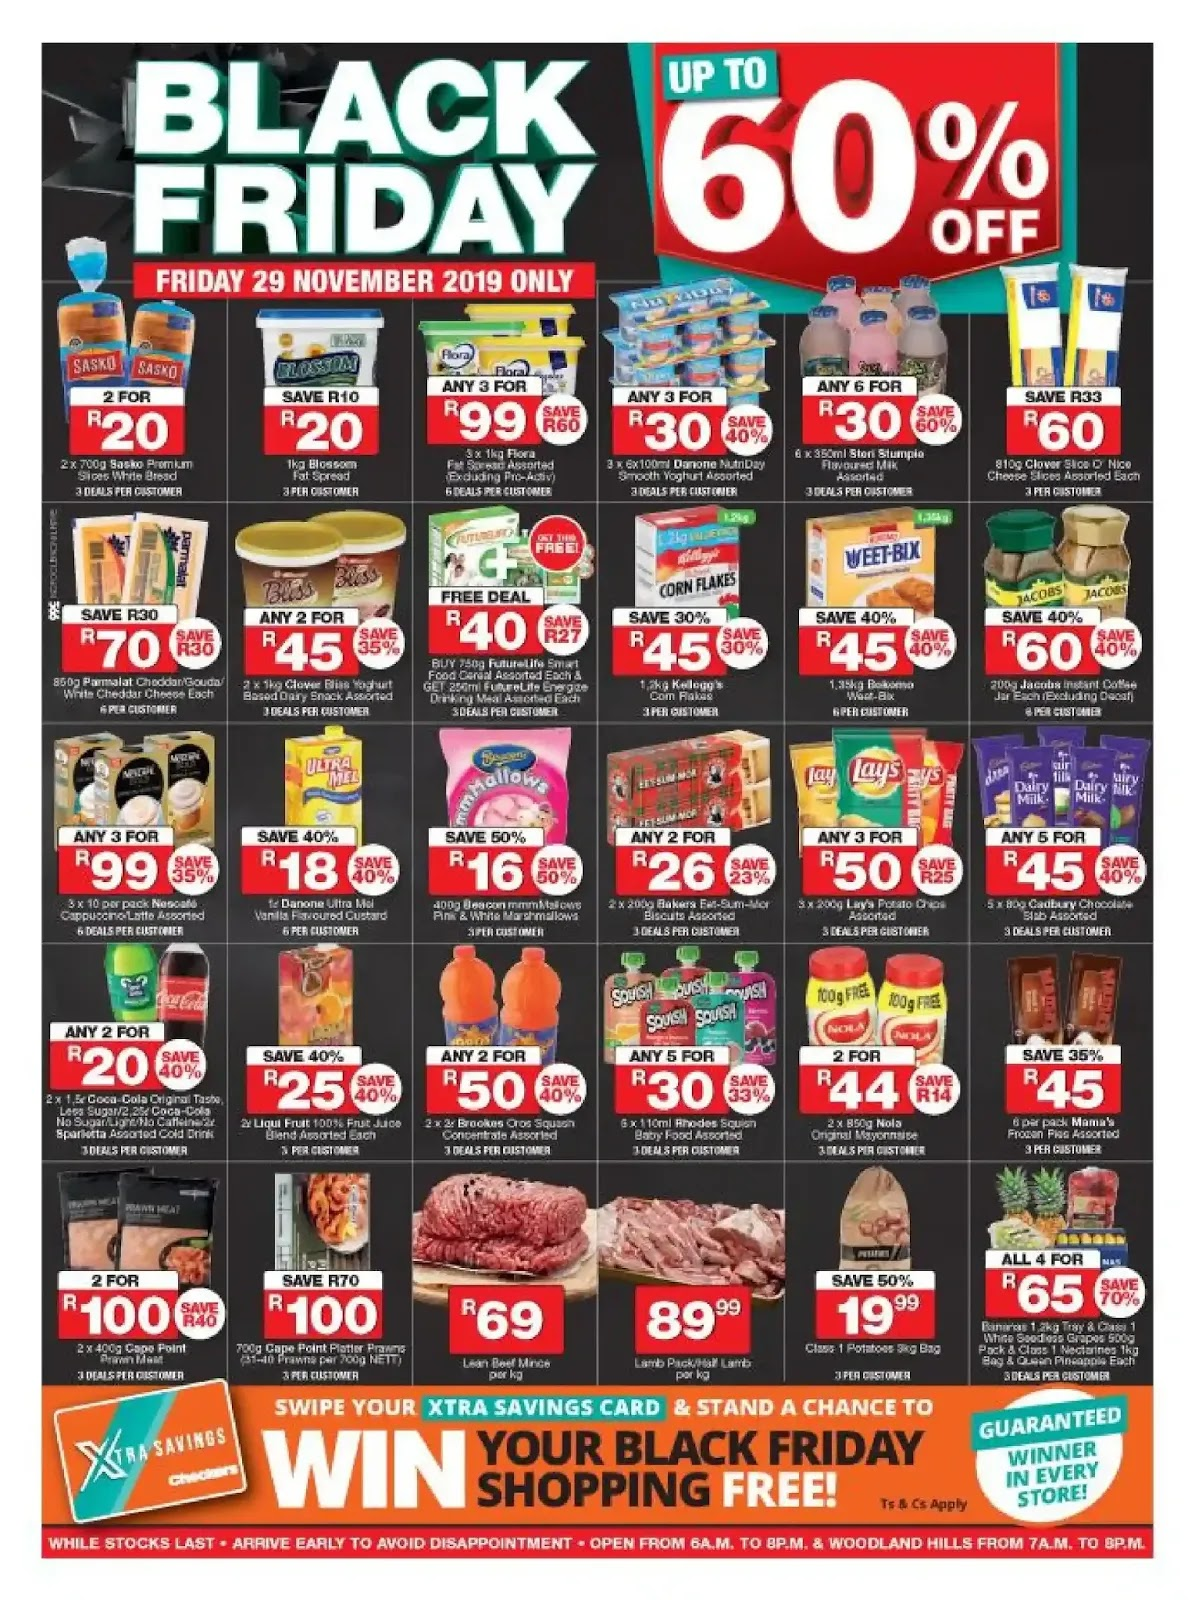 Updated 2019 Checkers Black Friday Deals Northern Cape Free State